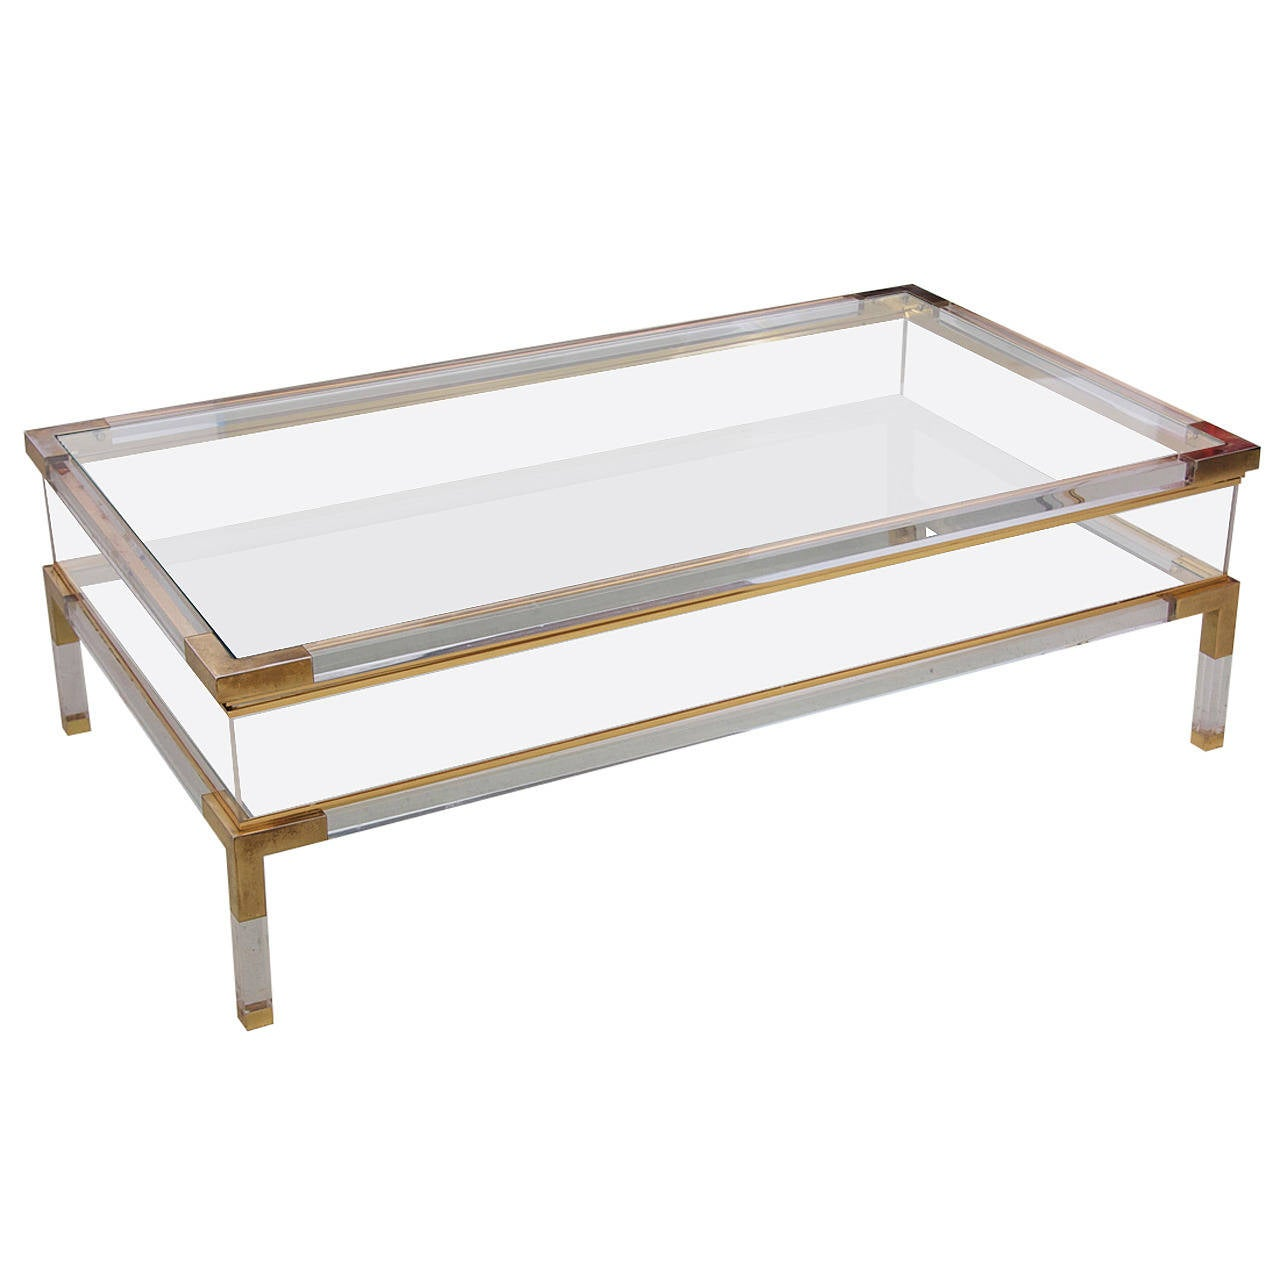 Design Lucite Coffee Table large lucite and brass vitrine coffee table by charles hollis jones 1